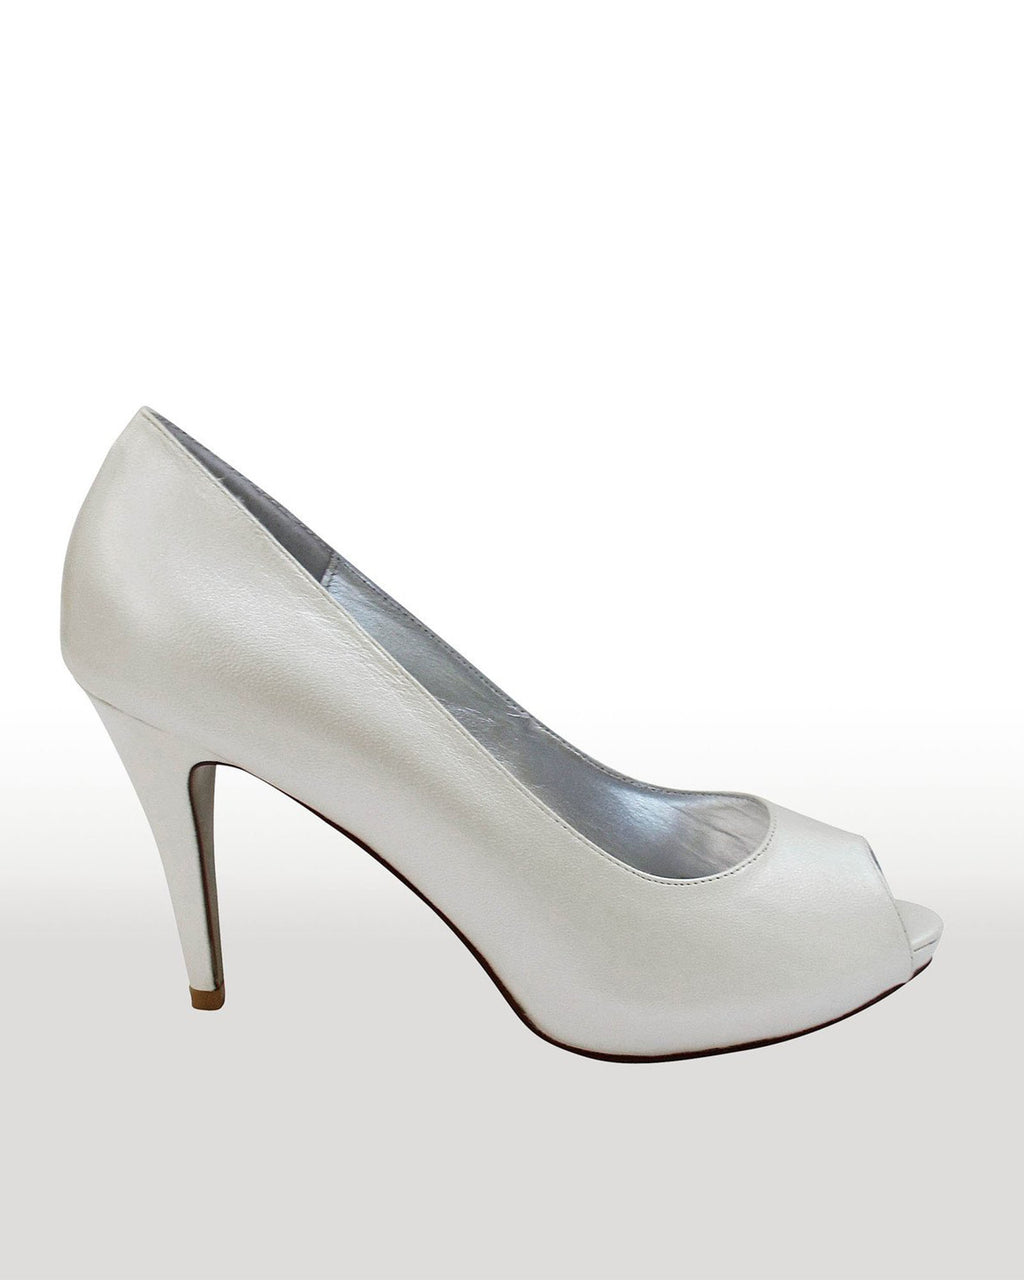 Izoa Lola Peeptoe Pumps Ivory (SIZES 39 & 41 ONLY)